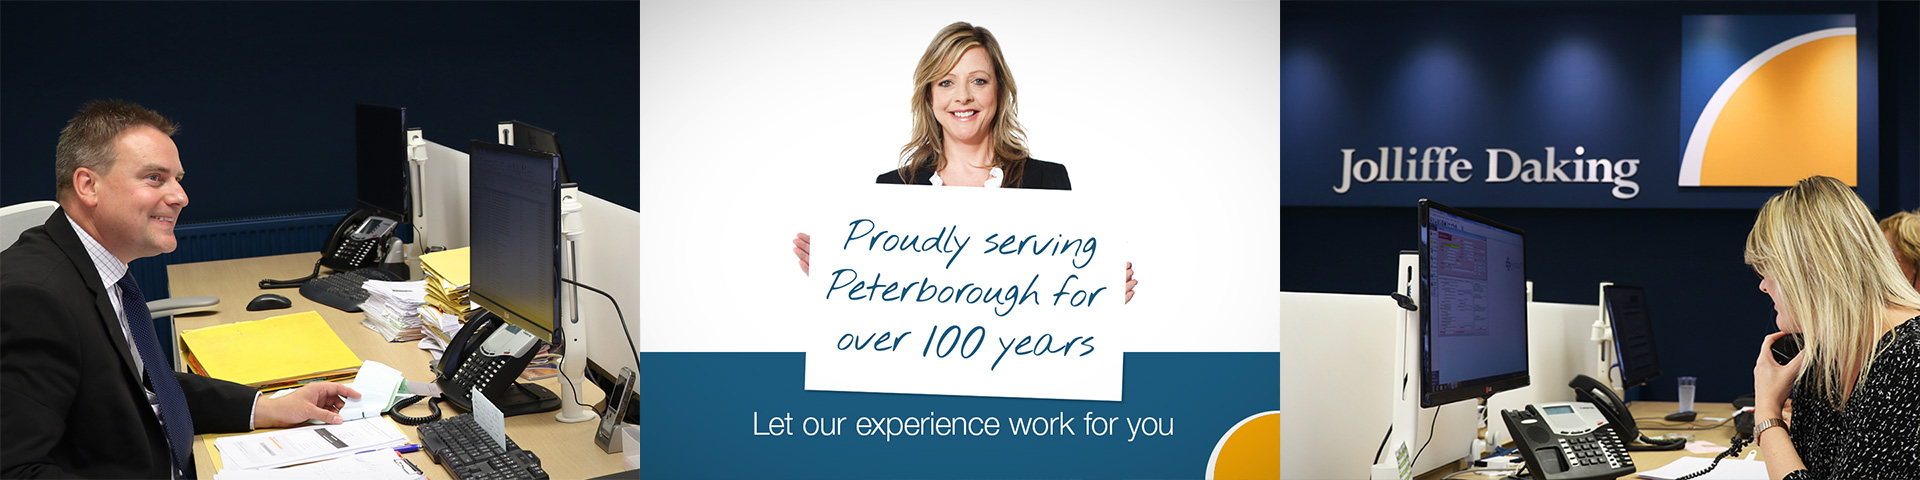 Let our experience work for you